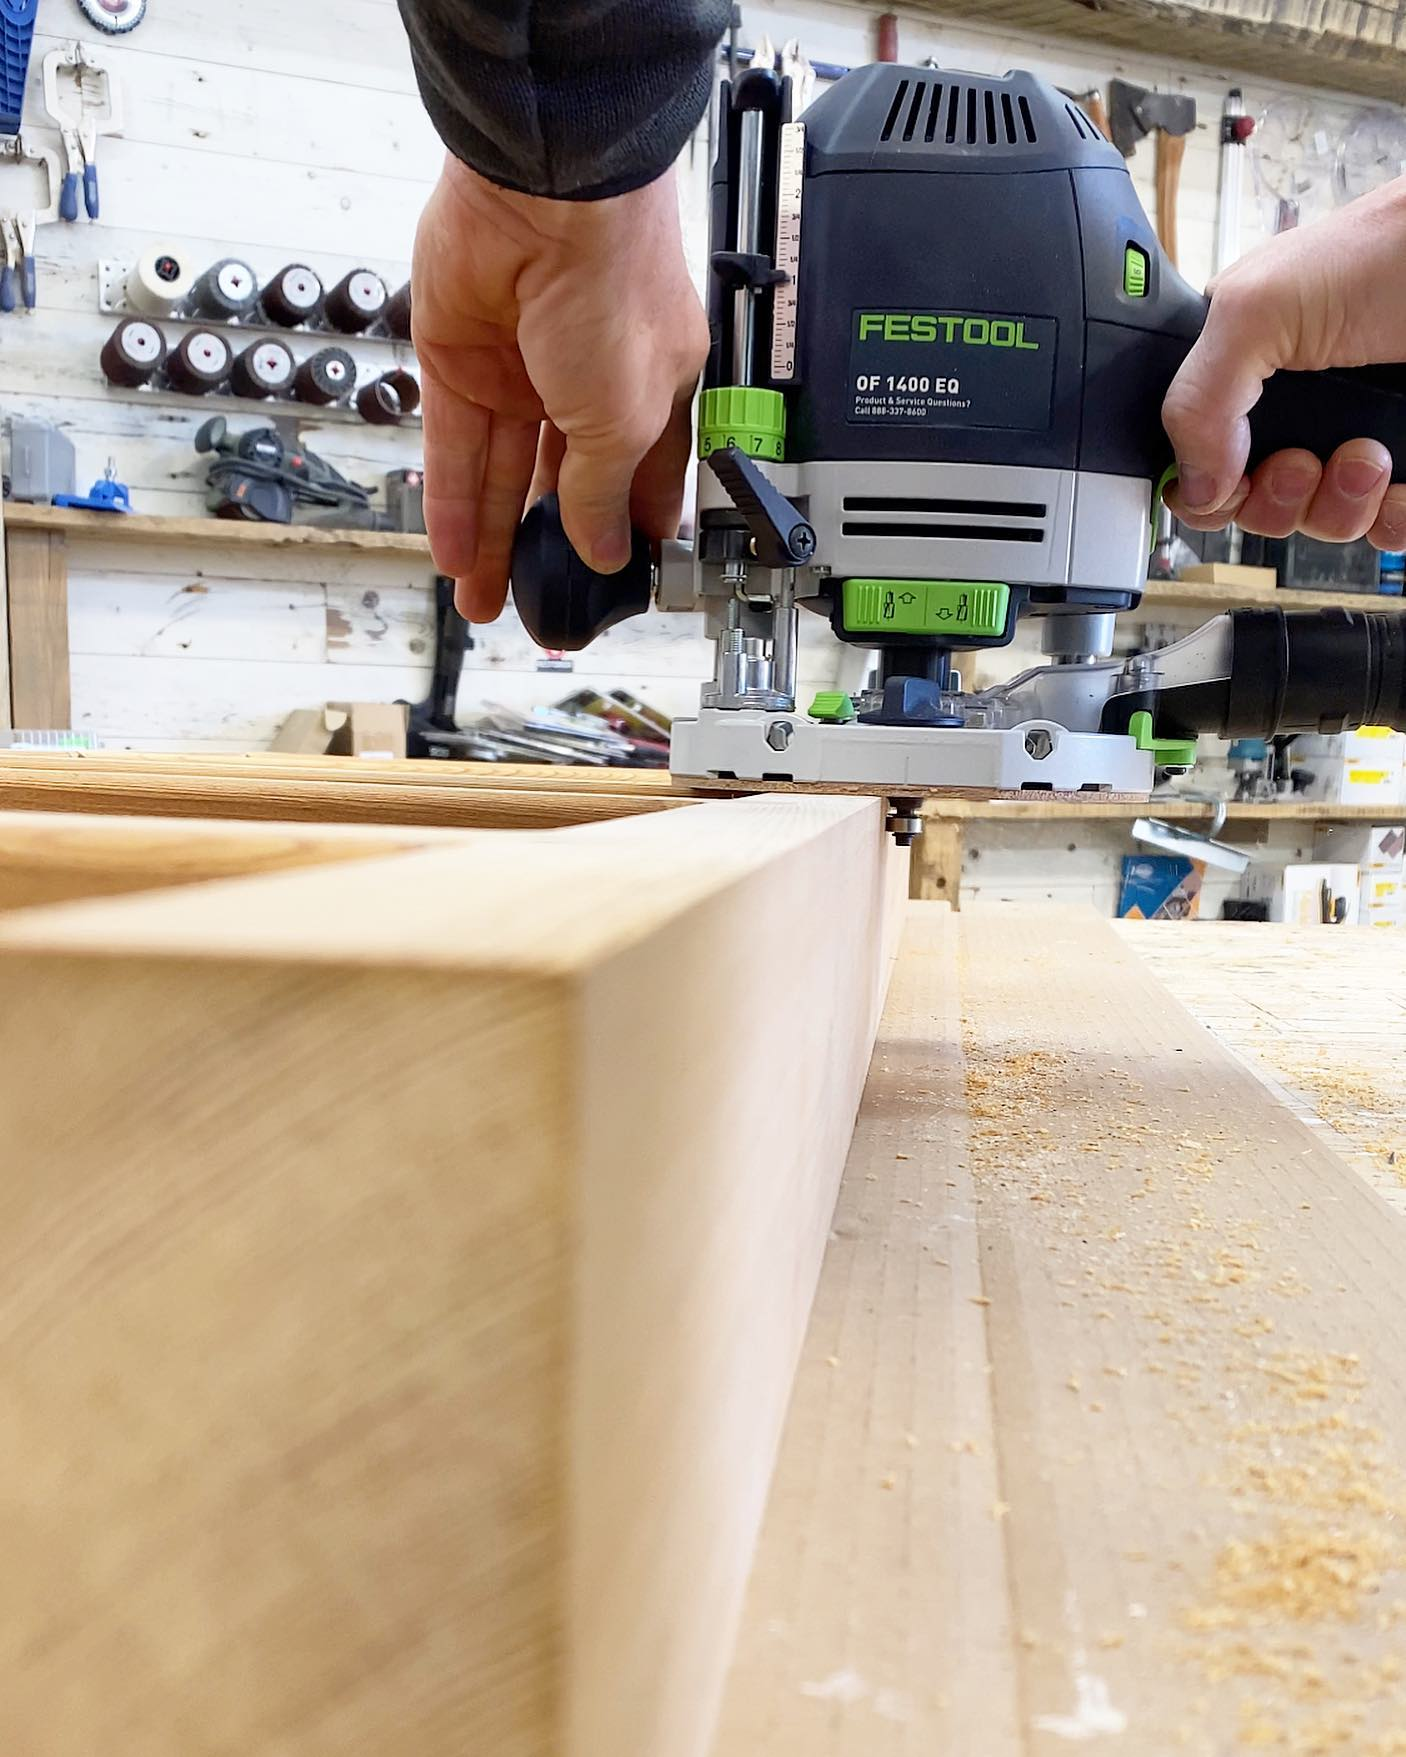 Festool router in action